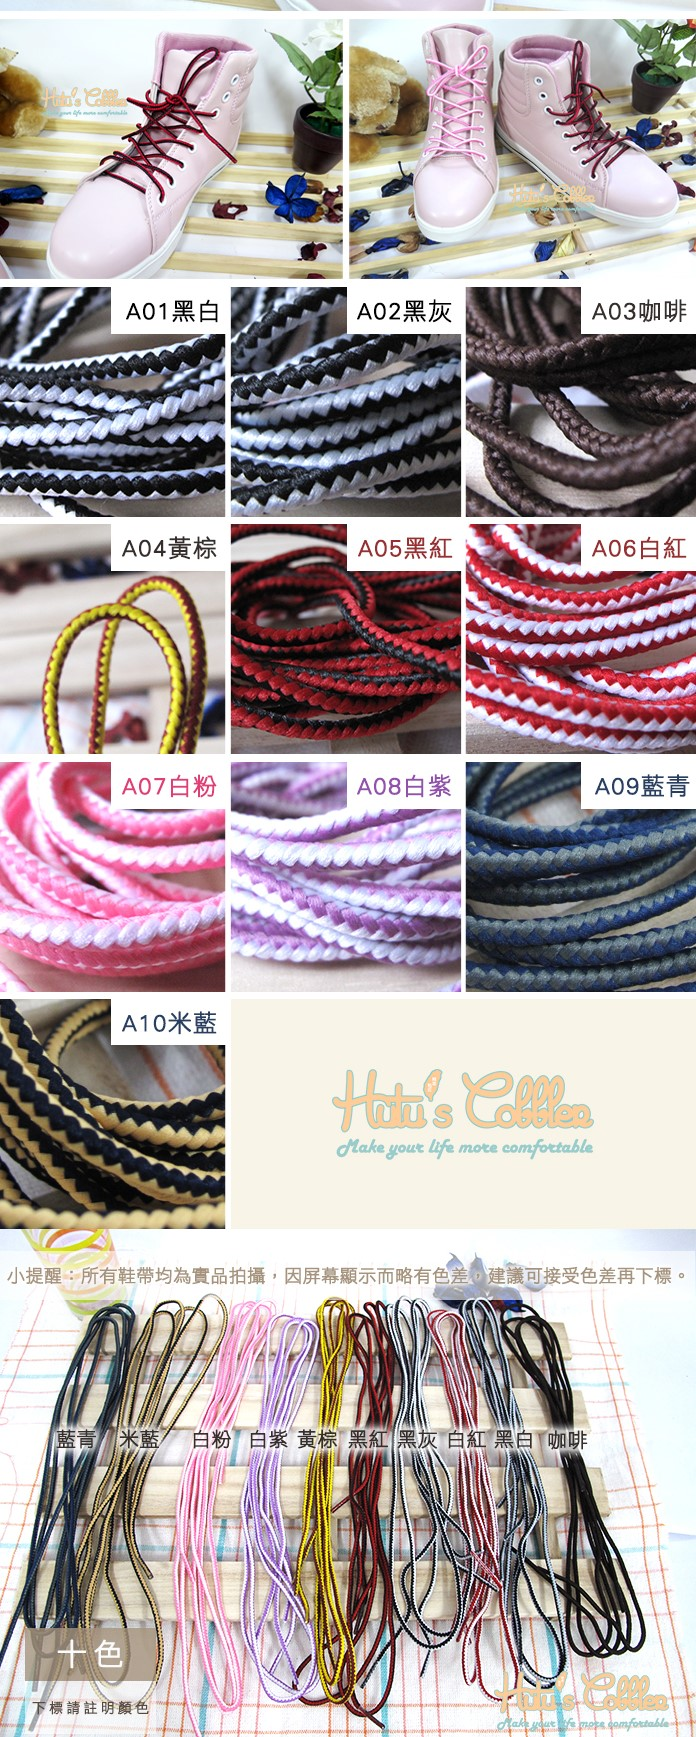 5abde45970c Taiwan Shoe Laces Round Bootlaces Walking Boot Hiking Boot Strong Laces  120cm 10 Colors